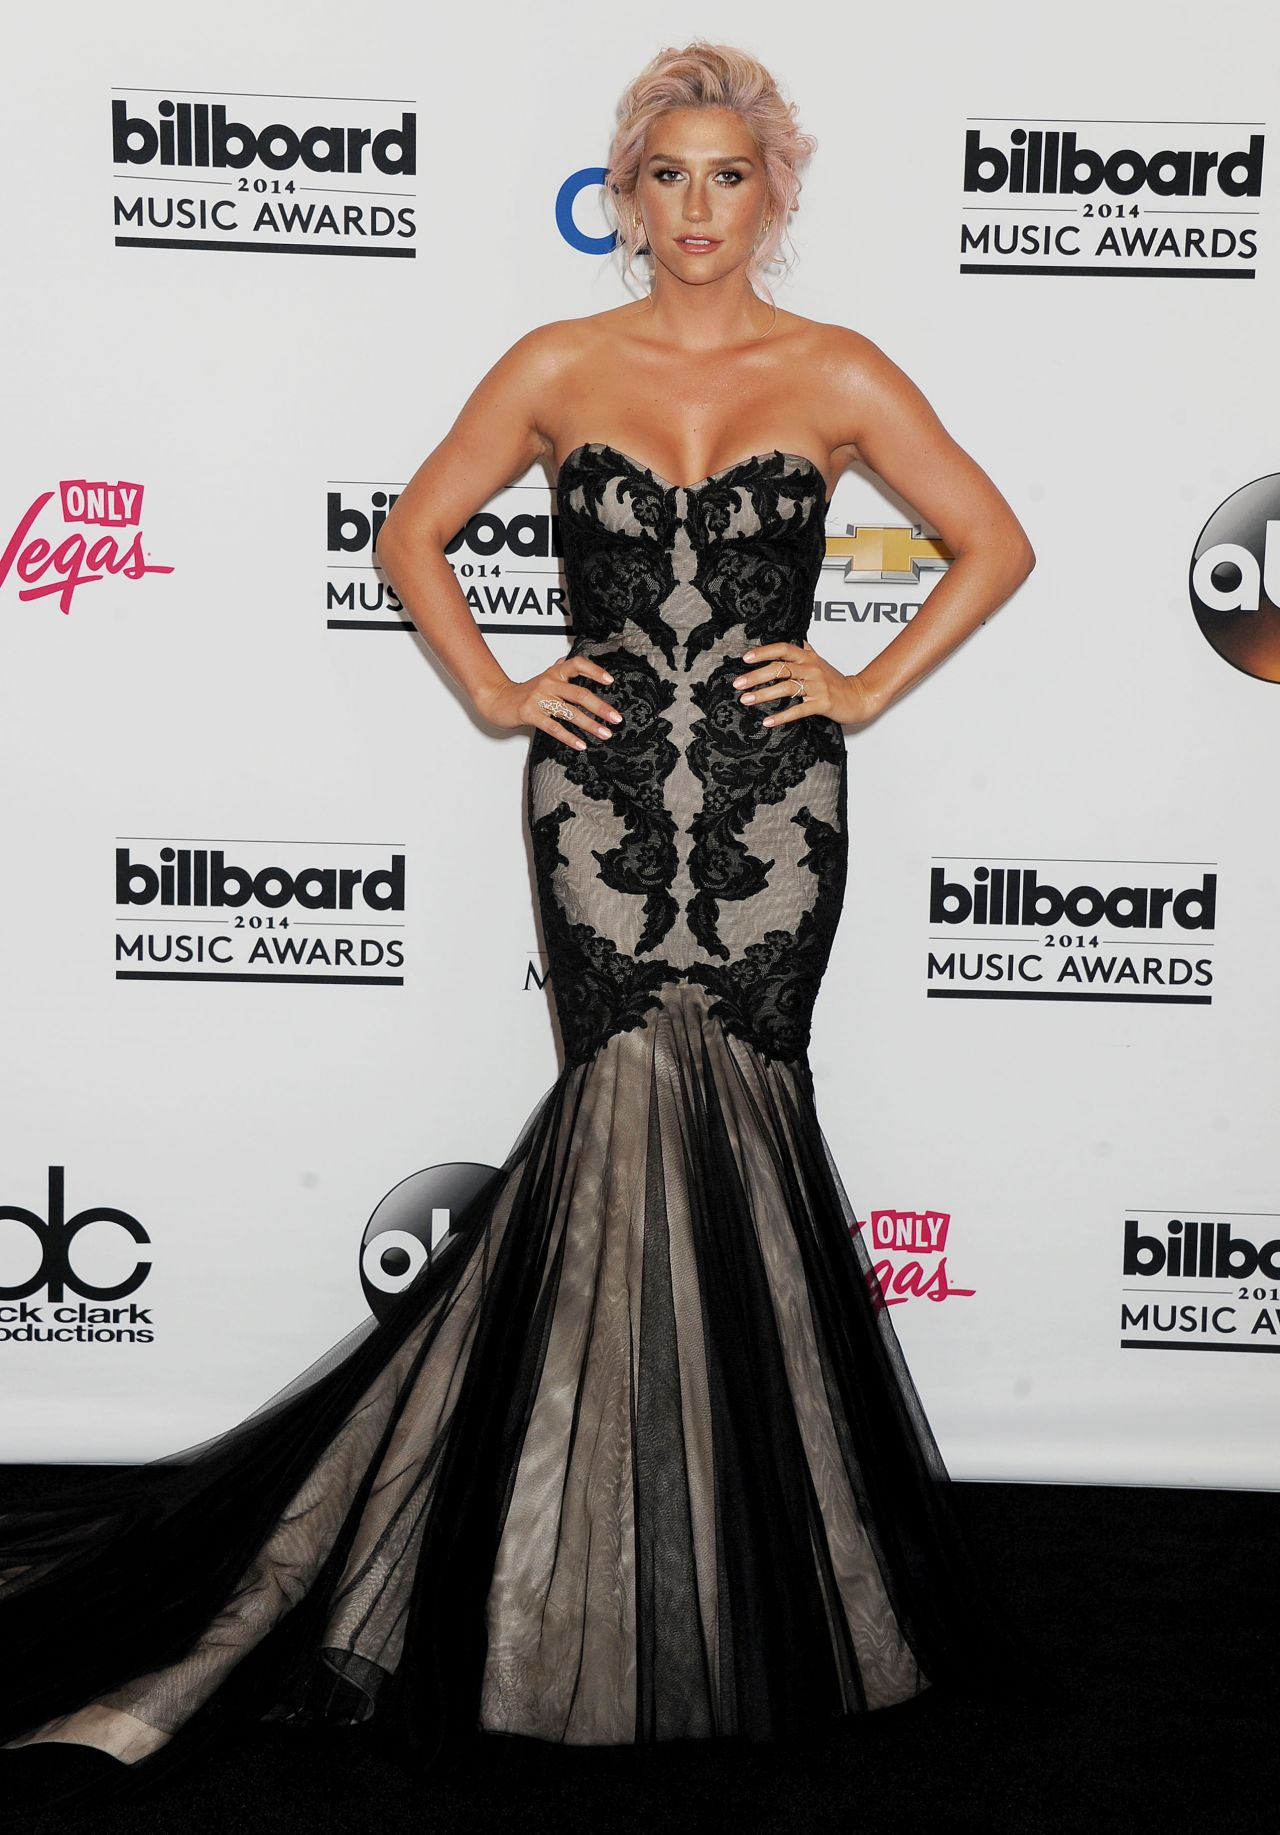 Kesha 2014 Billboard Music Awards In Las Vegas